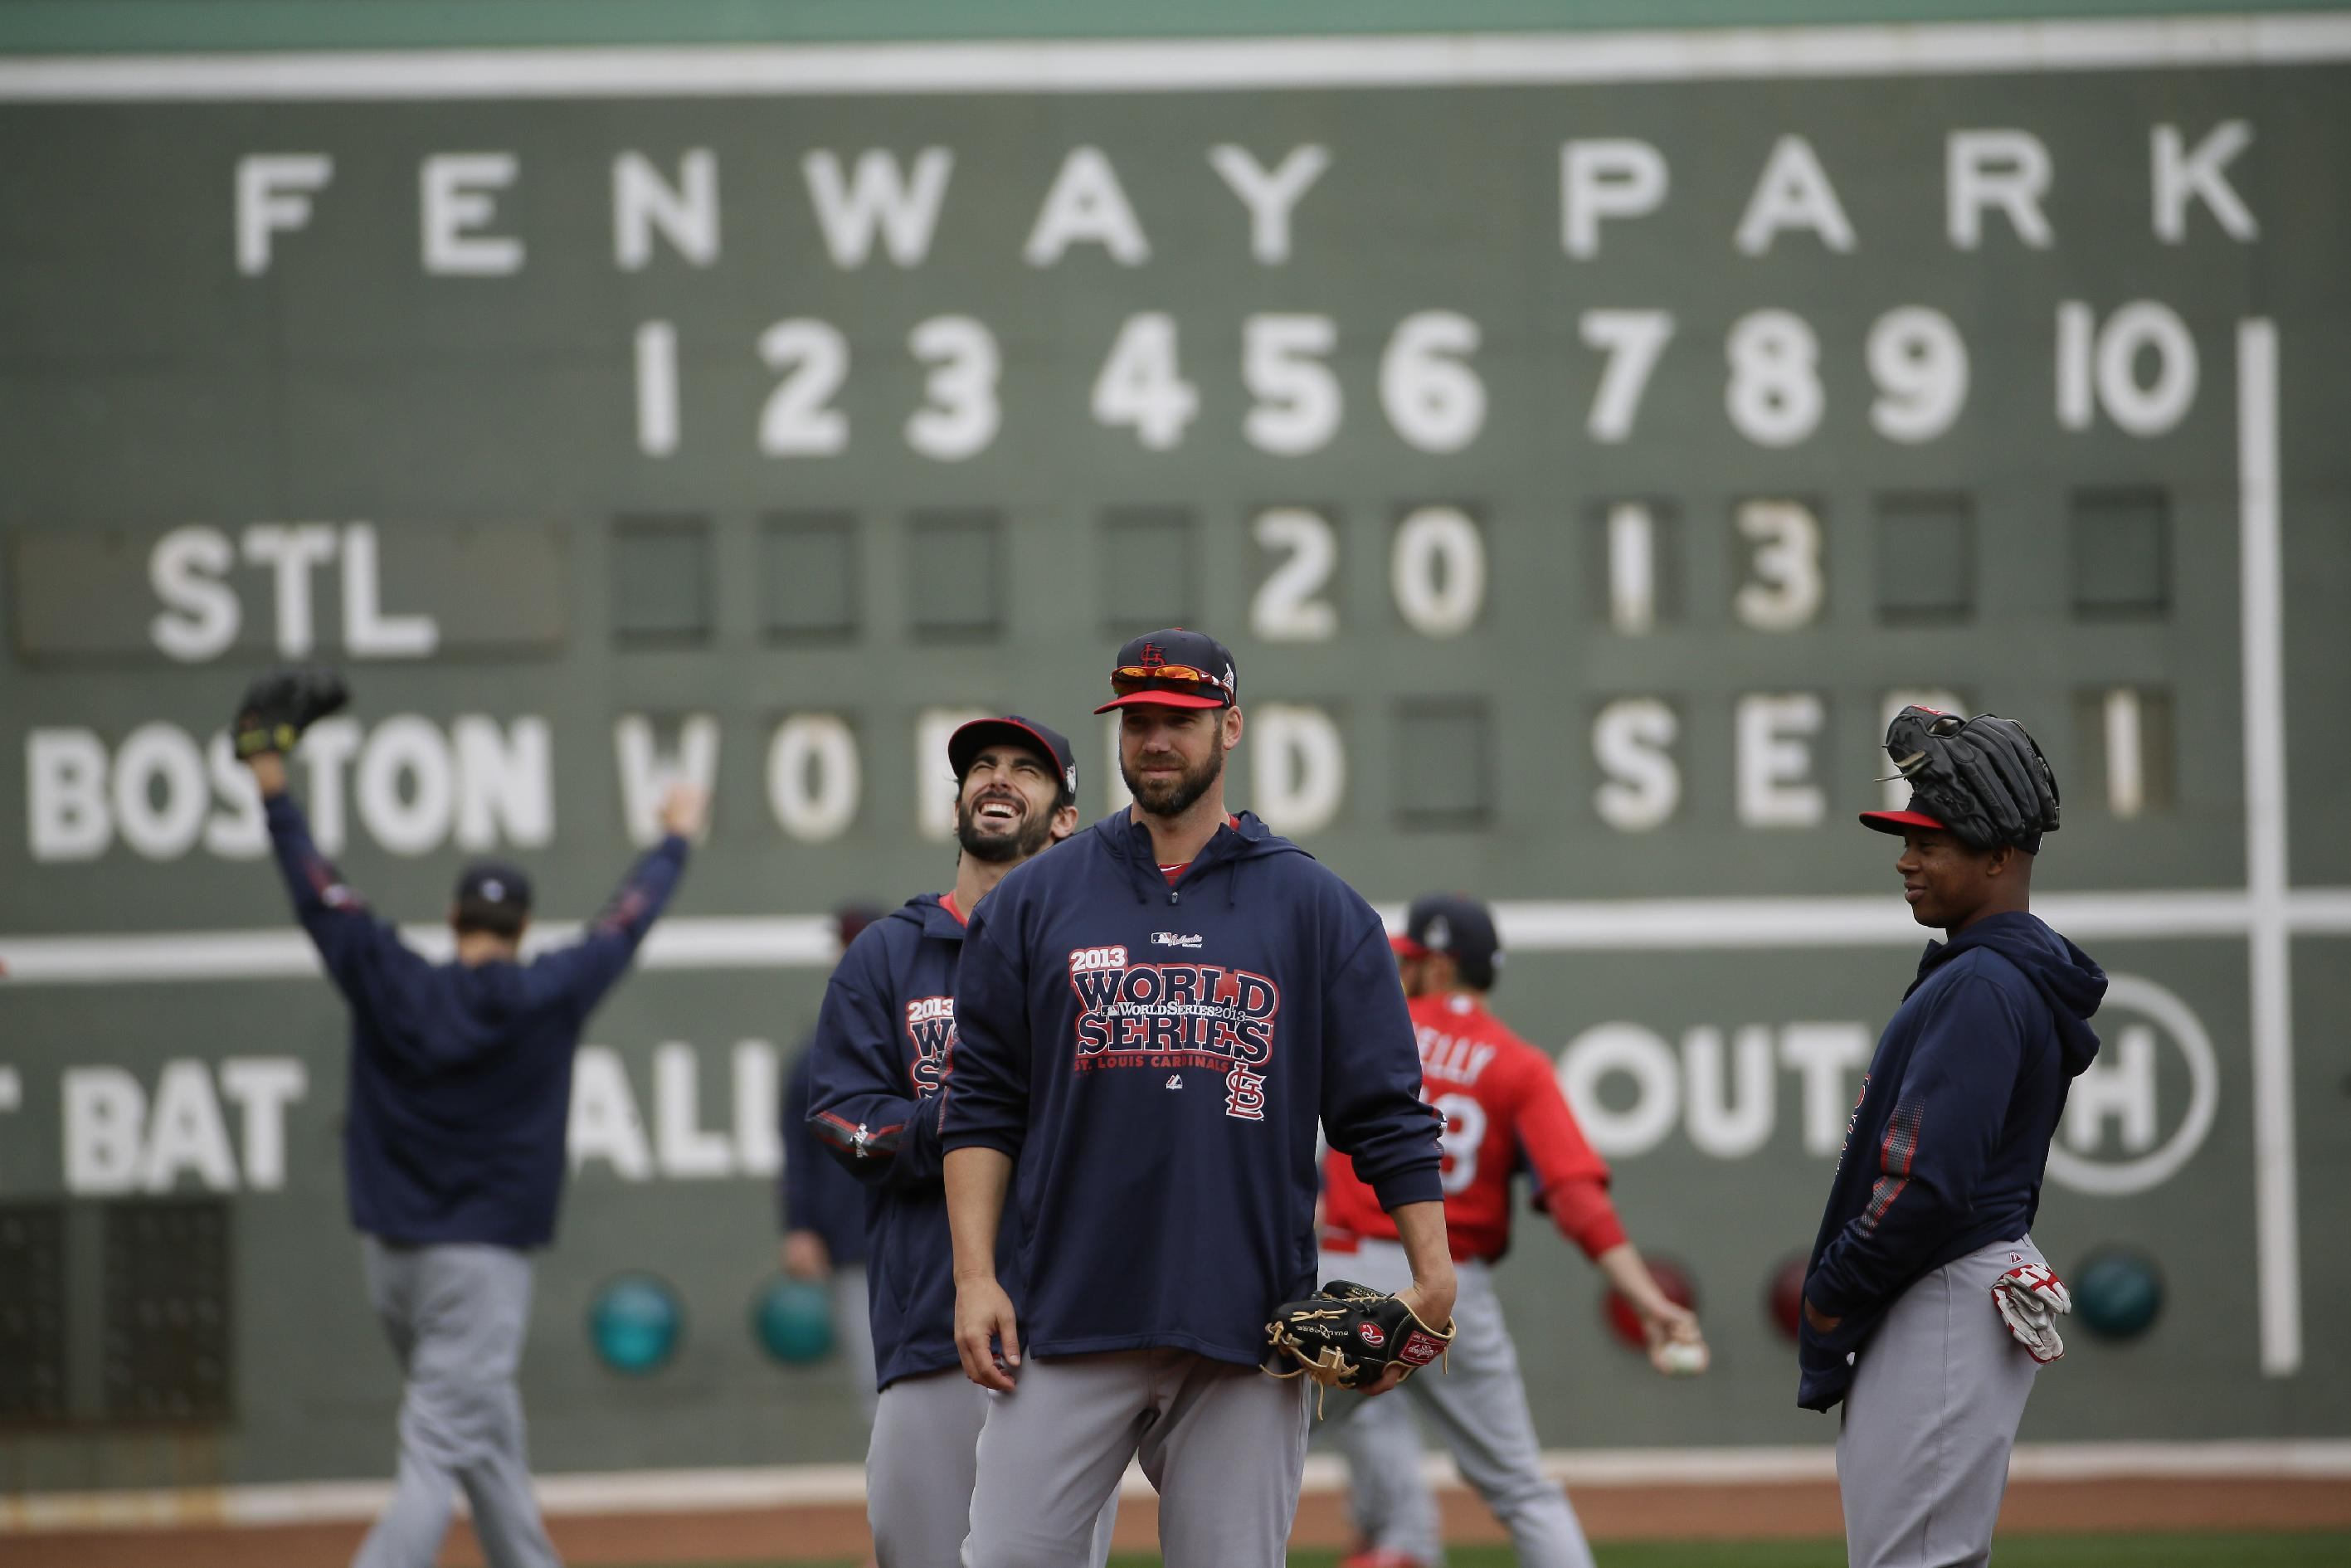 St. Louis Cardinals players warm up before batting practice for Game 1 of baseball's World Series against the Boston Red Sox Tuesday, Oct. 22, 2013, in Boston